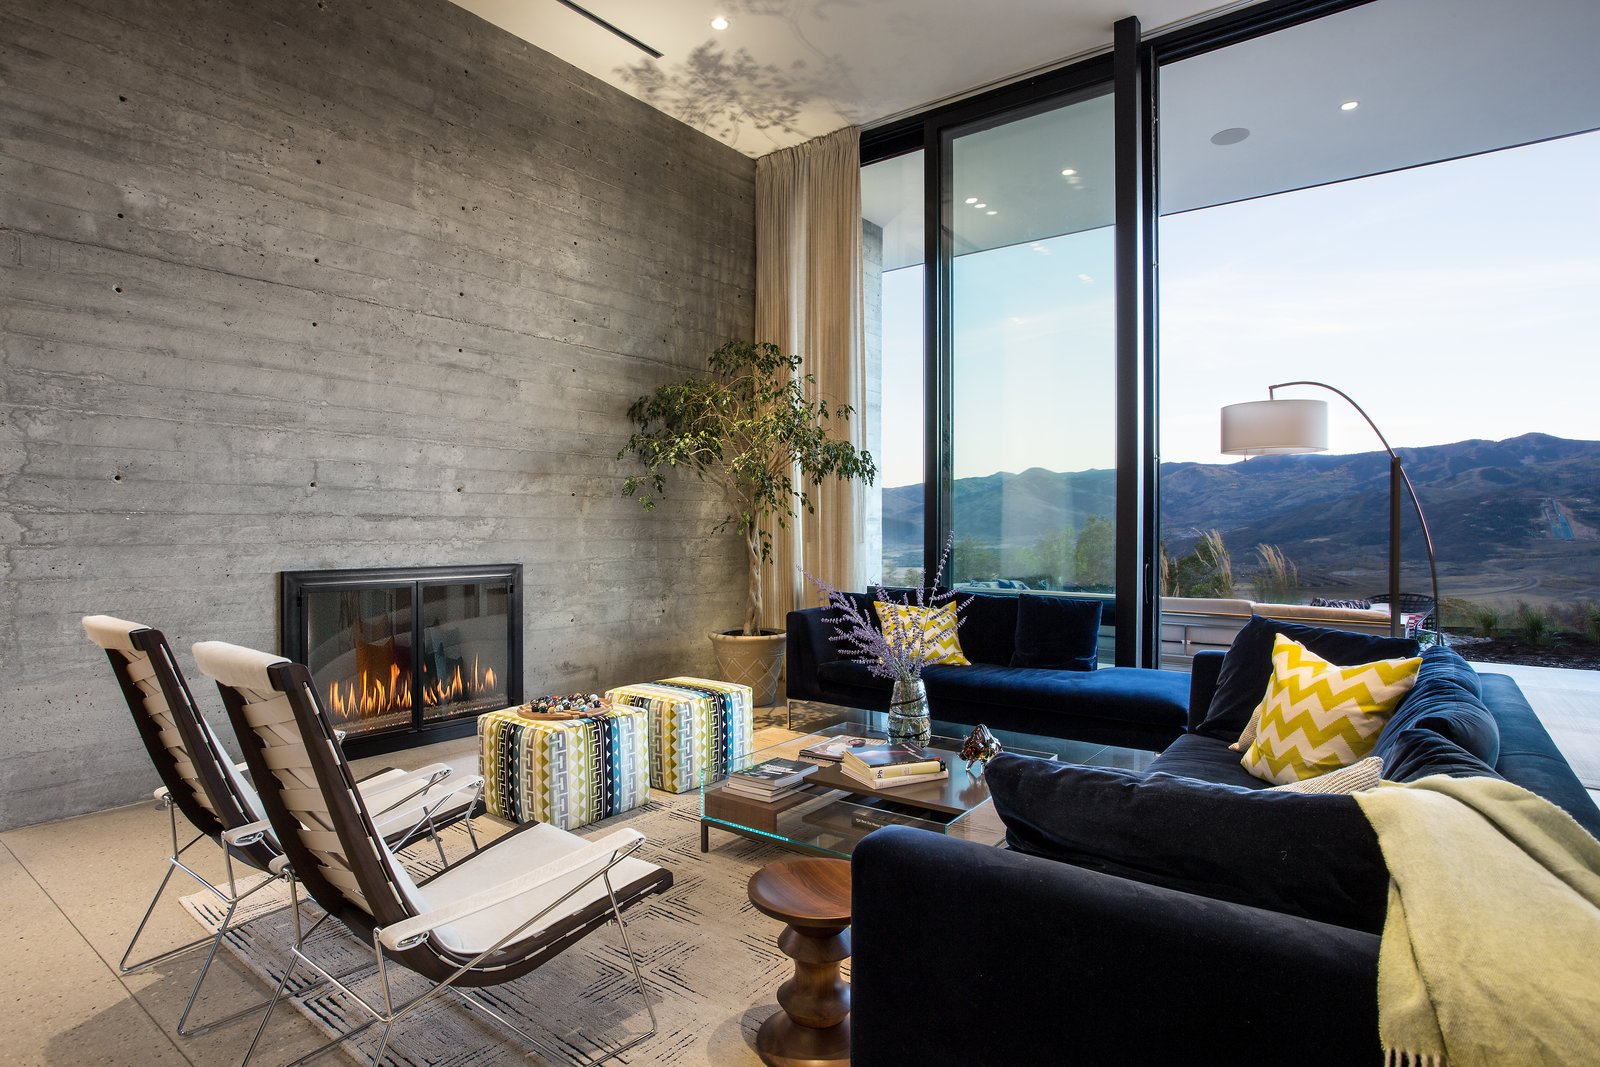 Living Room, Chair, Recessed Lighting, Floor Lighting, Ottomans, Sofa, Coffee Tables, End Tables, Rug Floor, Lamps, and Standard Layout Fireplace  Park City Modern Residence by Sparano + Mooney Architecture